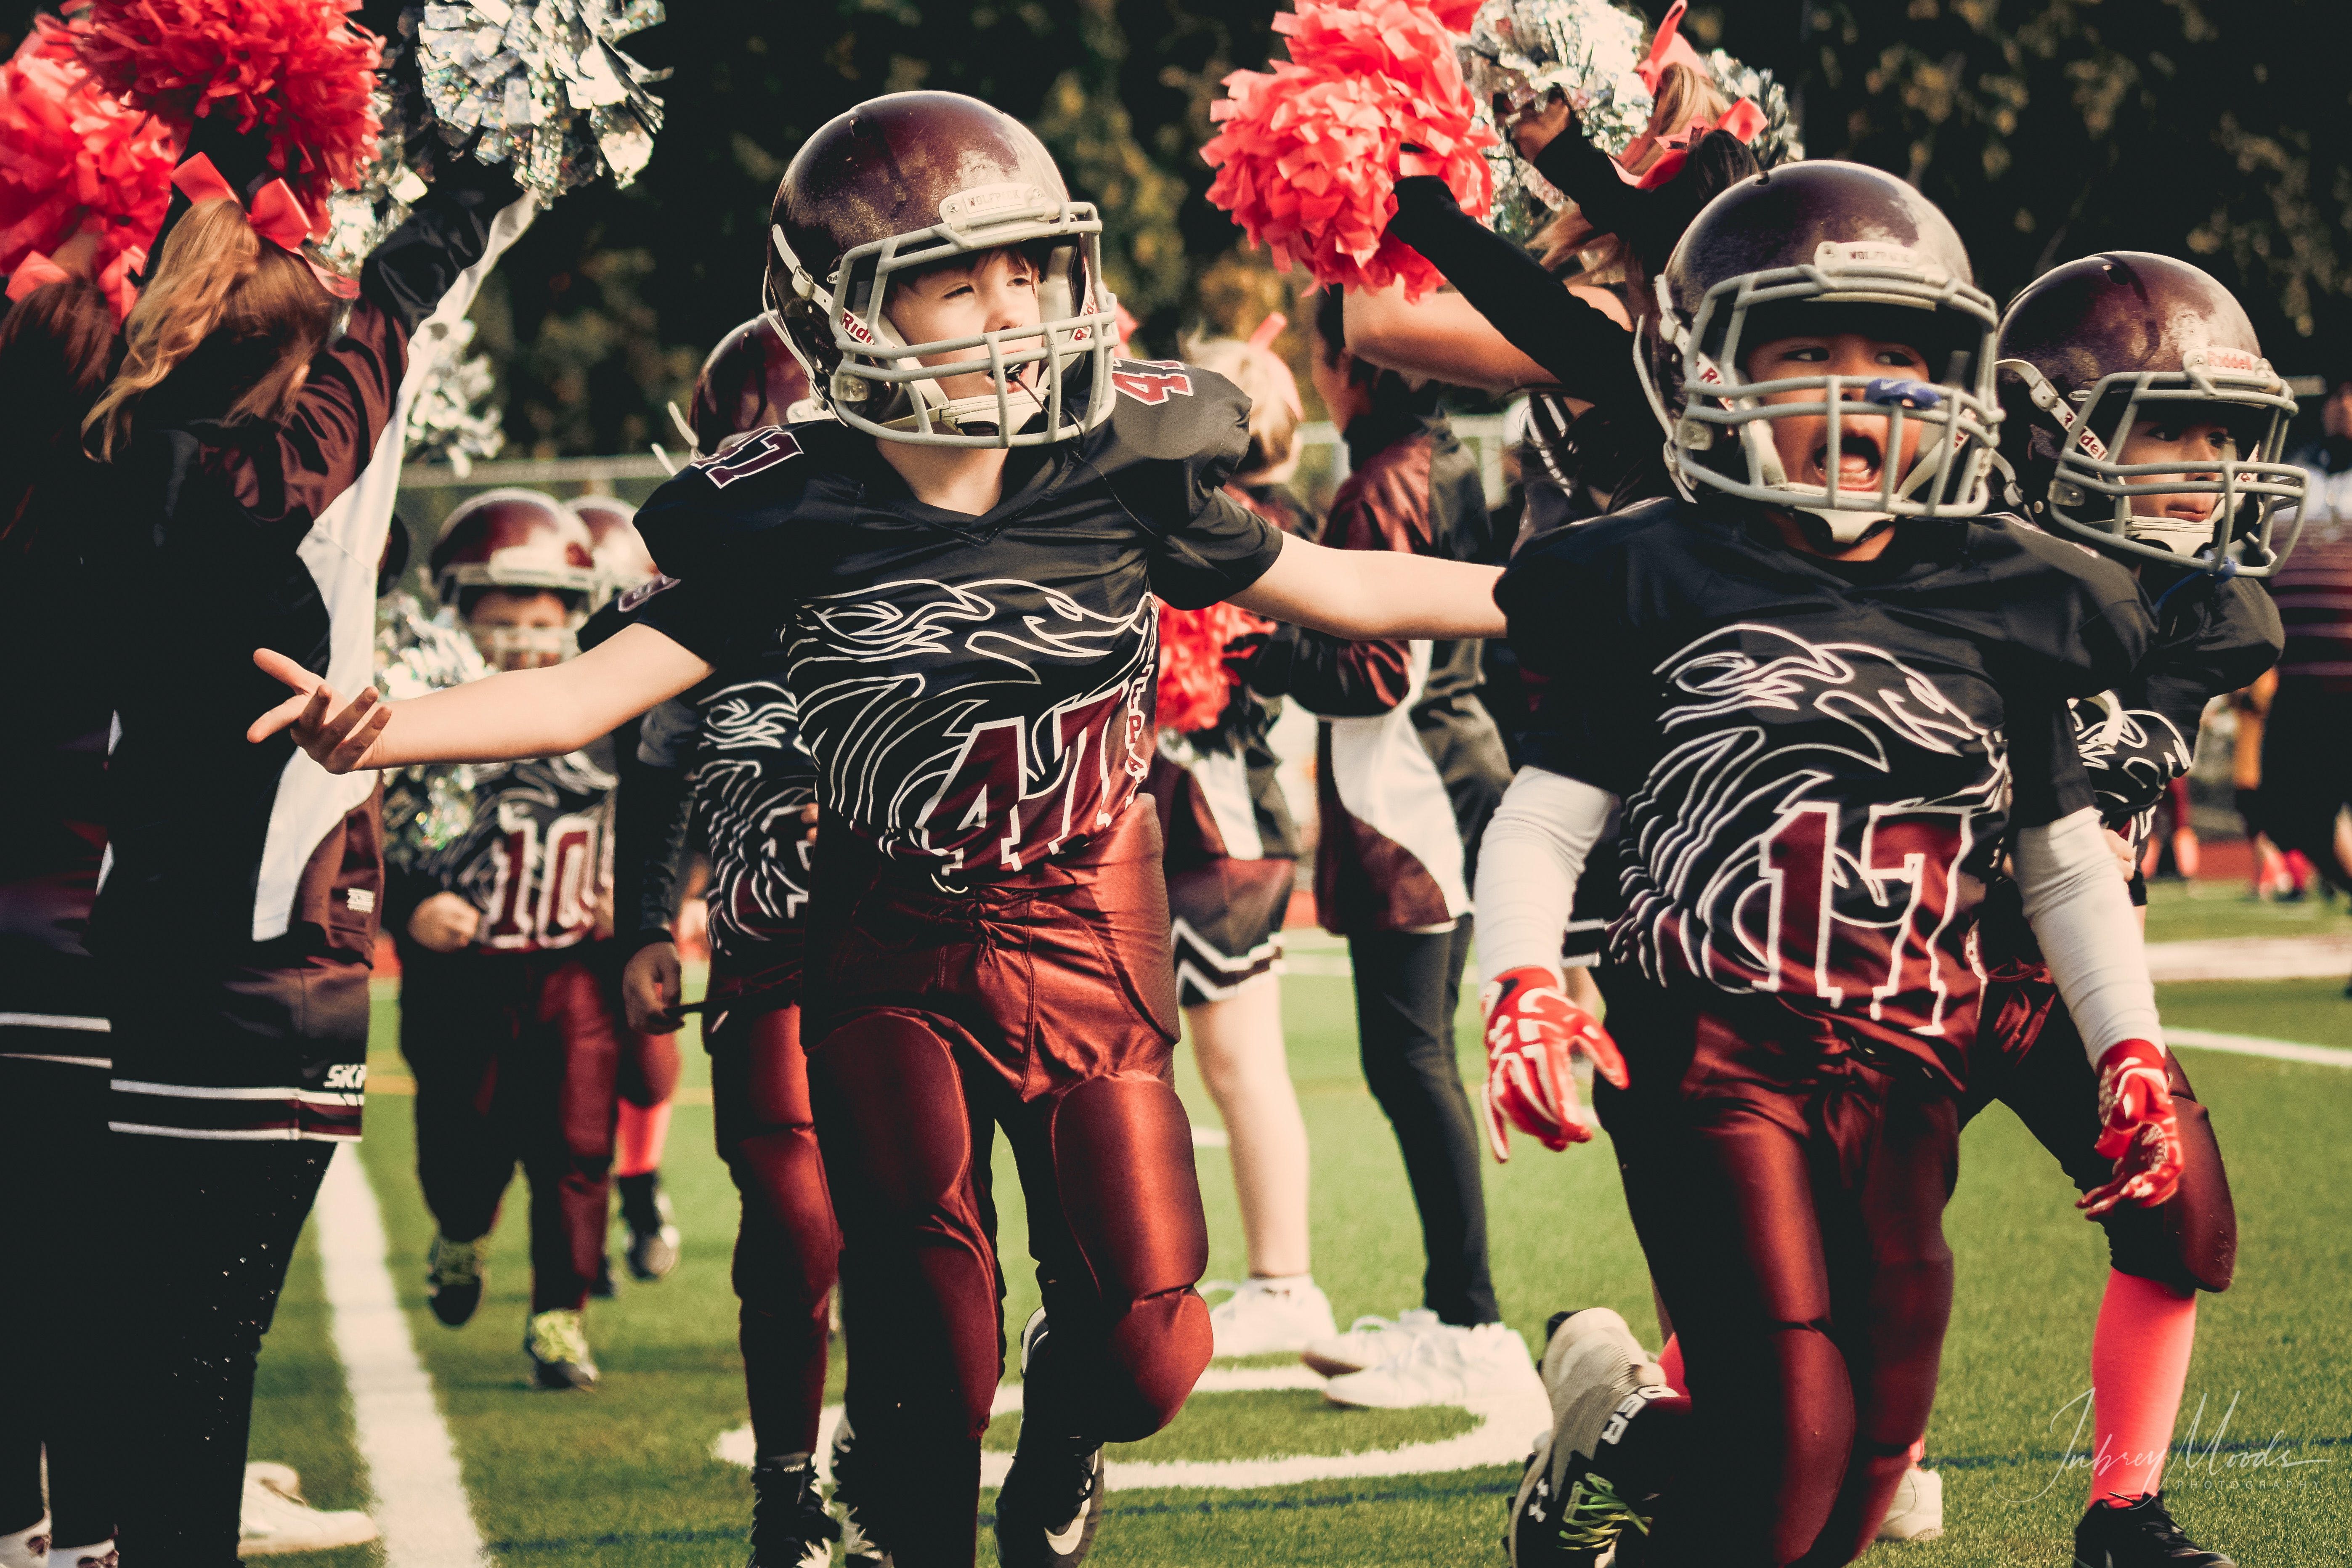 Free Photo Children In White And Red Football Outfit